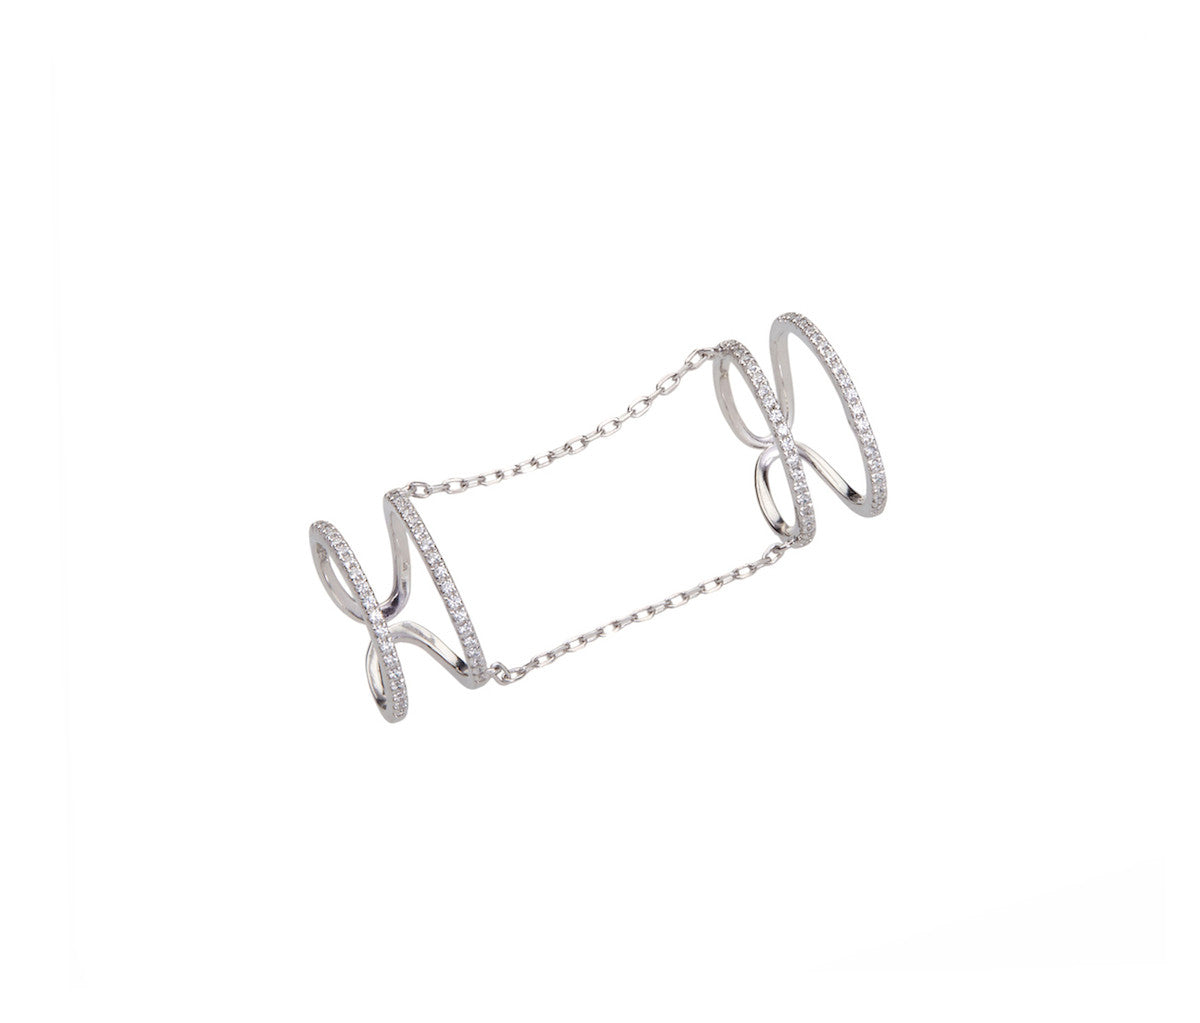 Four-Band Full Finger Ring, linked with 2 Elegant Silver Chains